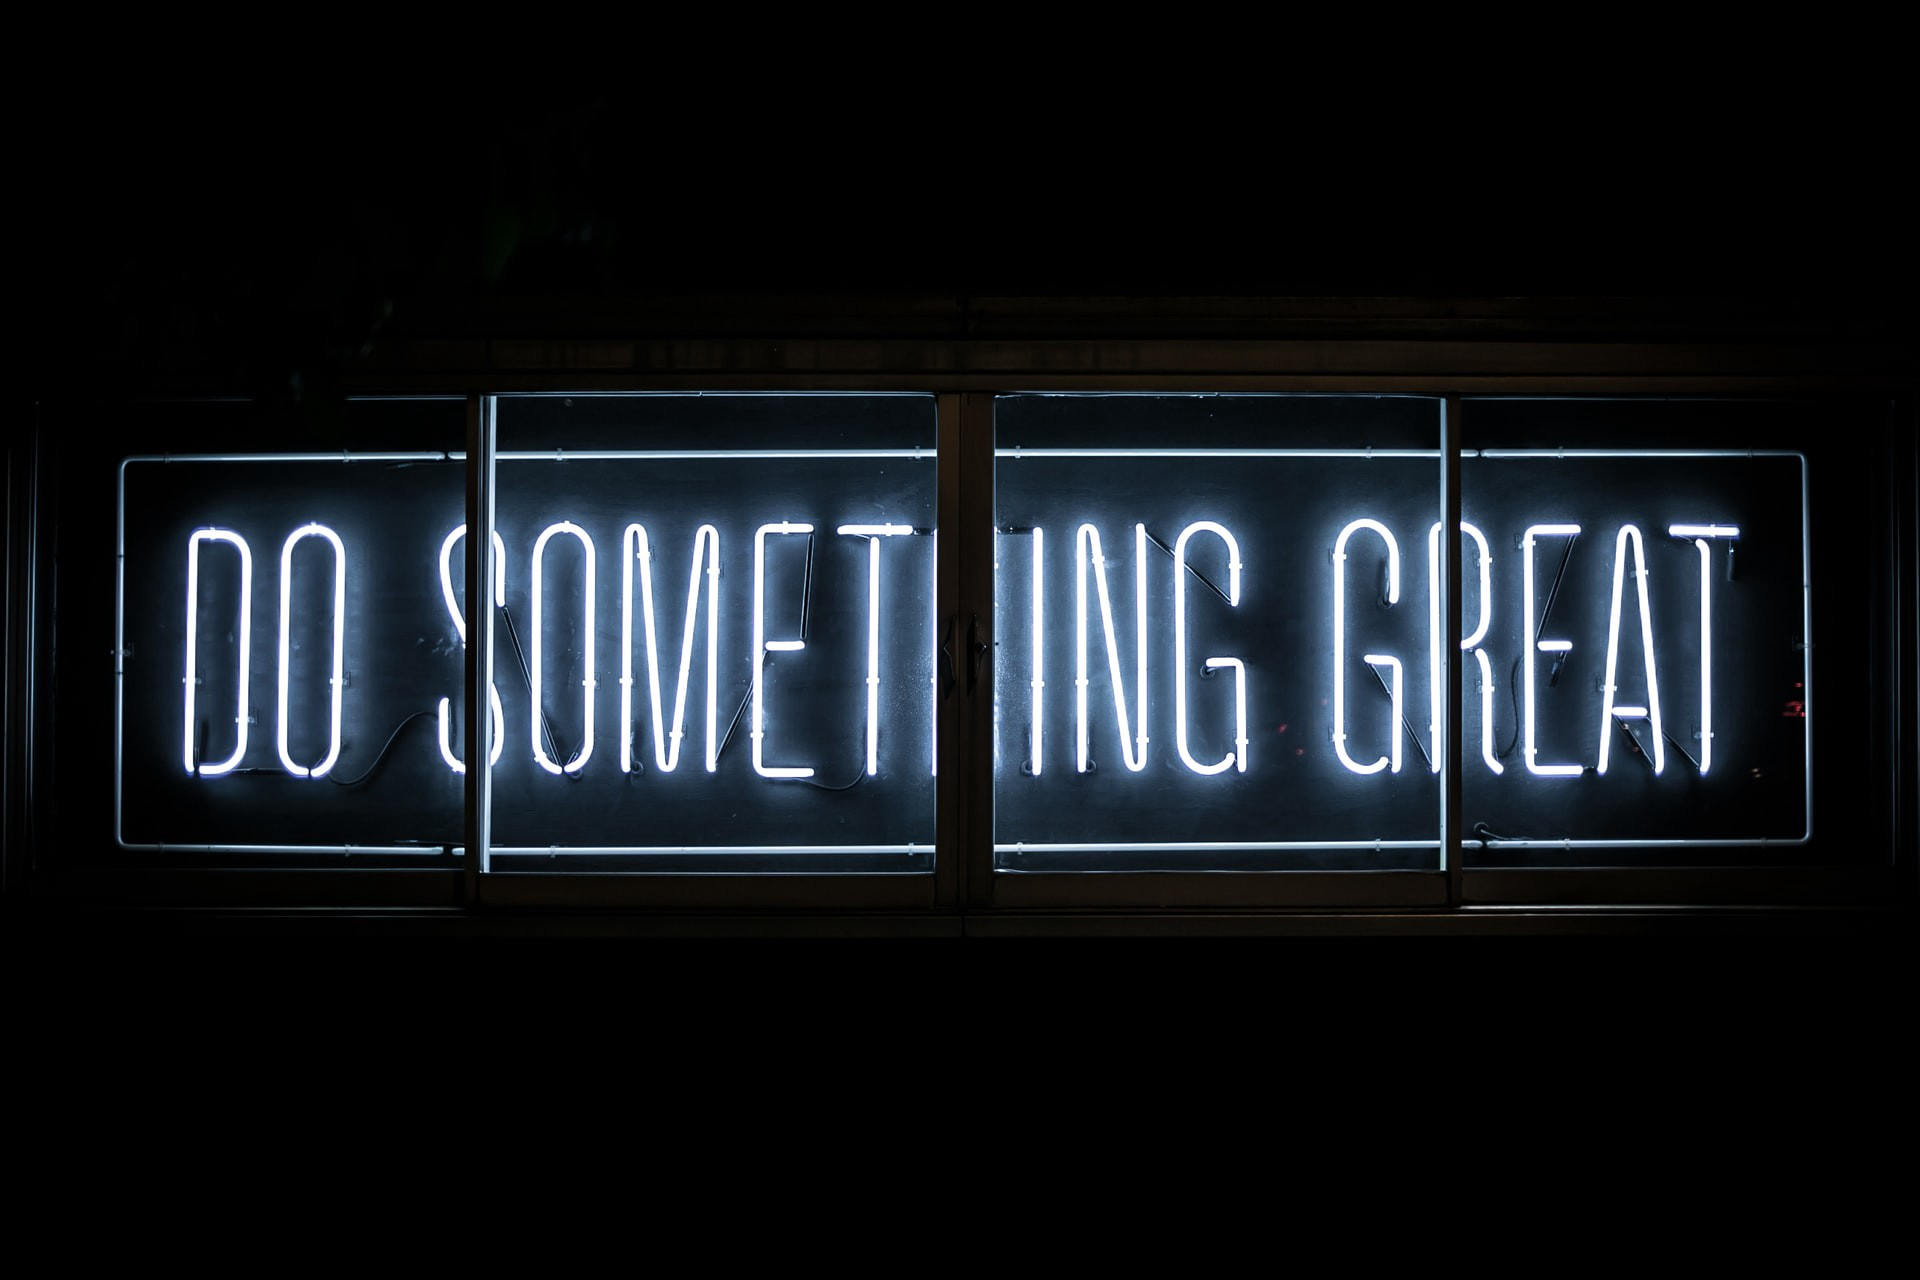 """Bright neon sign reading: """"DO SOMETHING GREAT"""""""